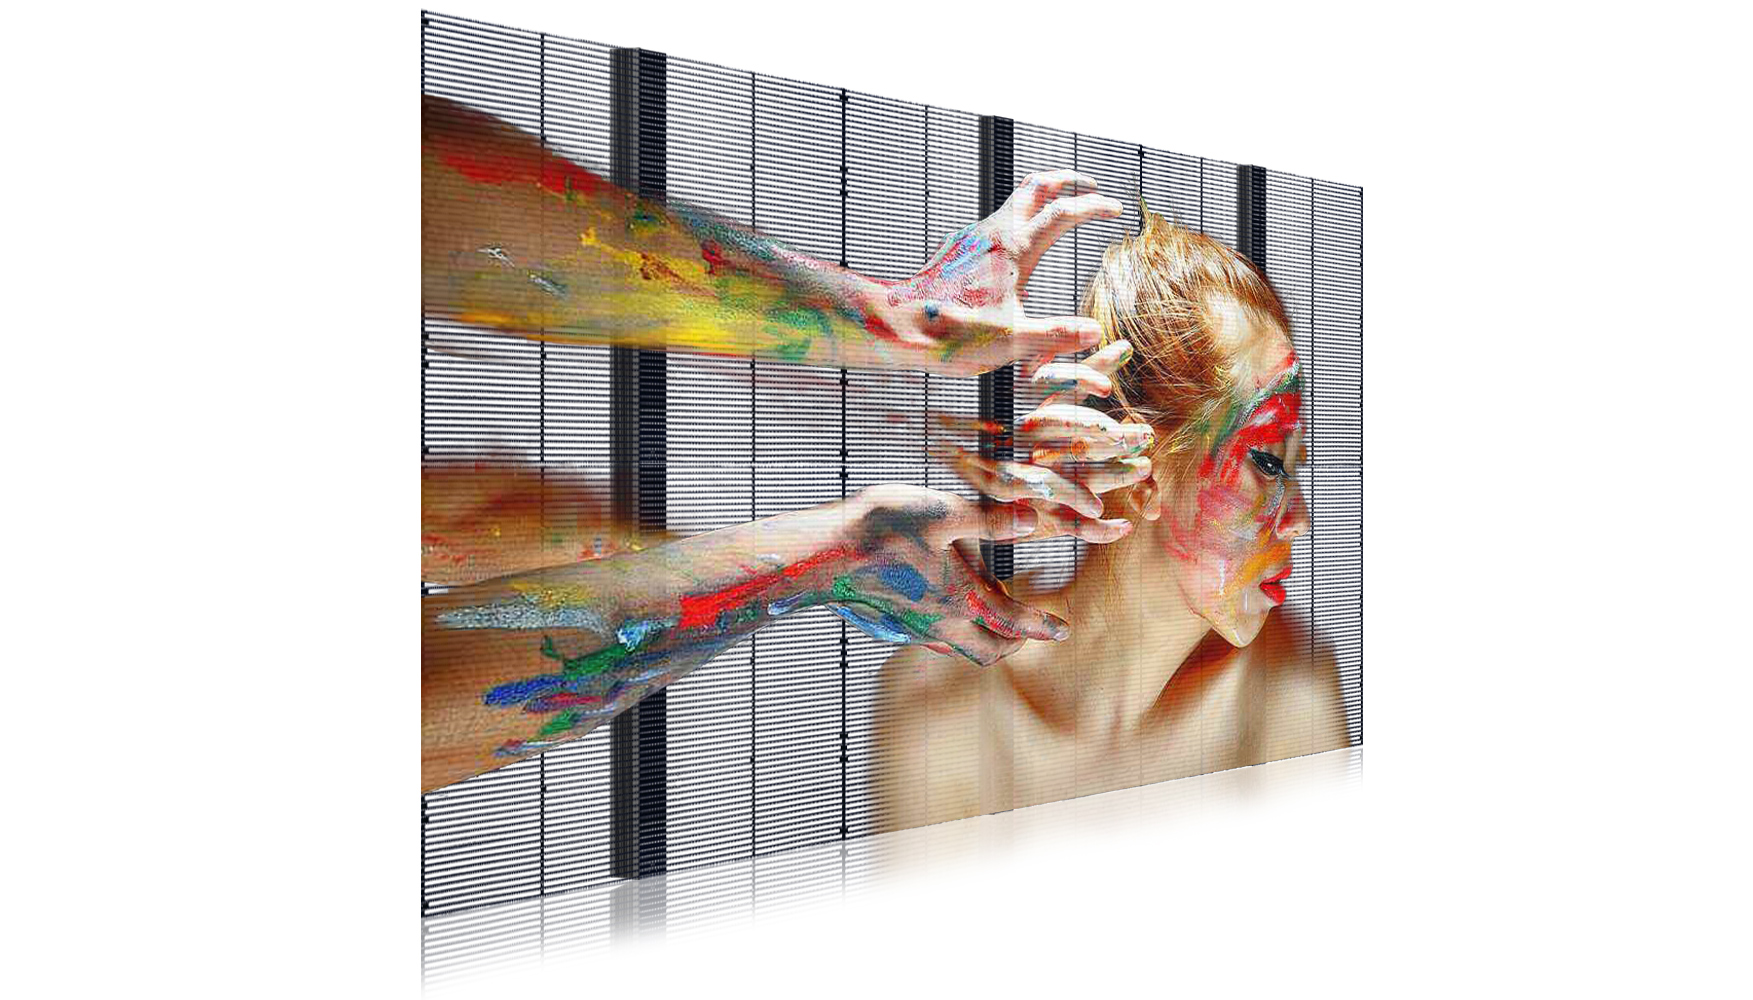 LED interactive transparent screen